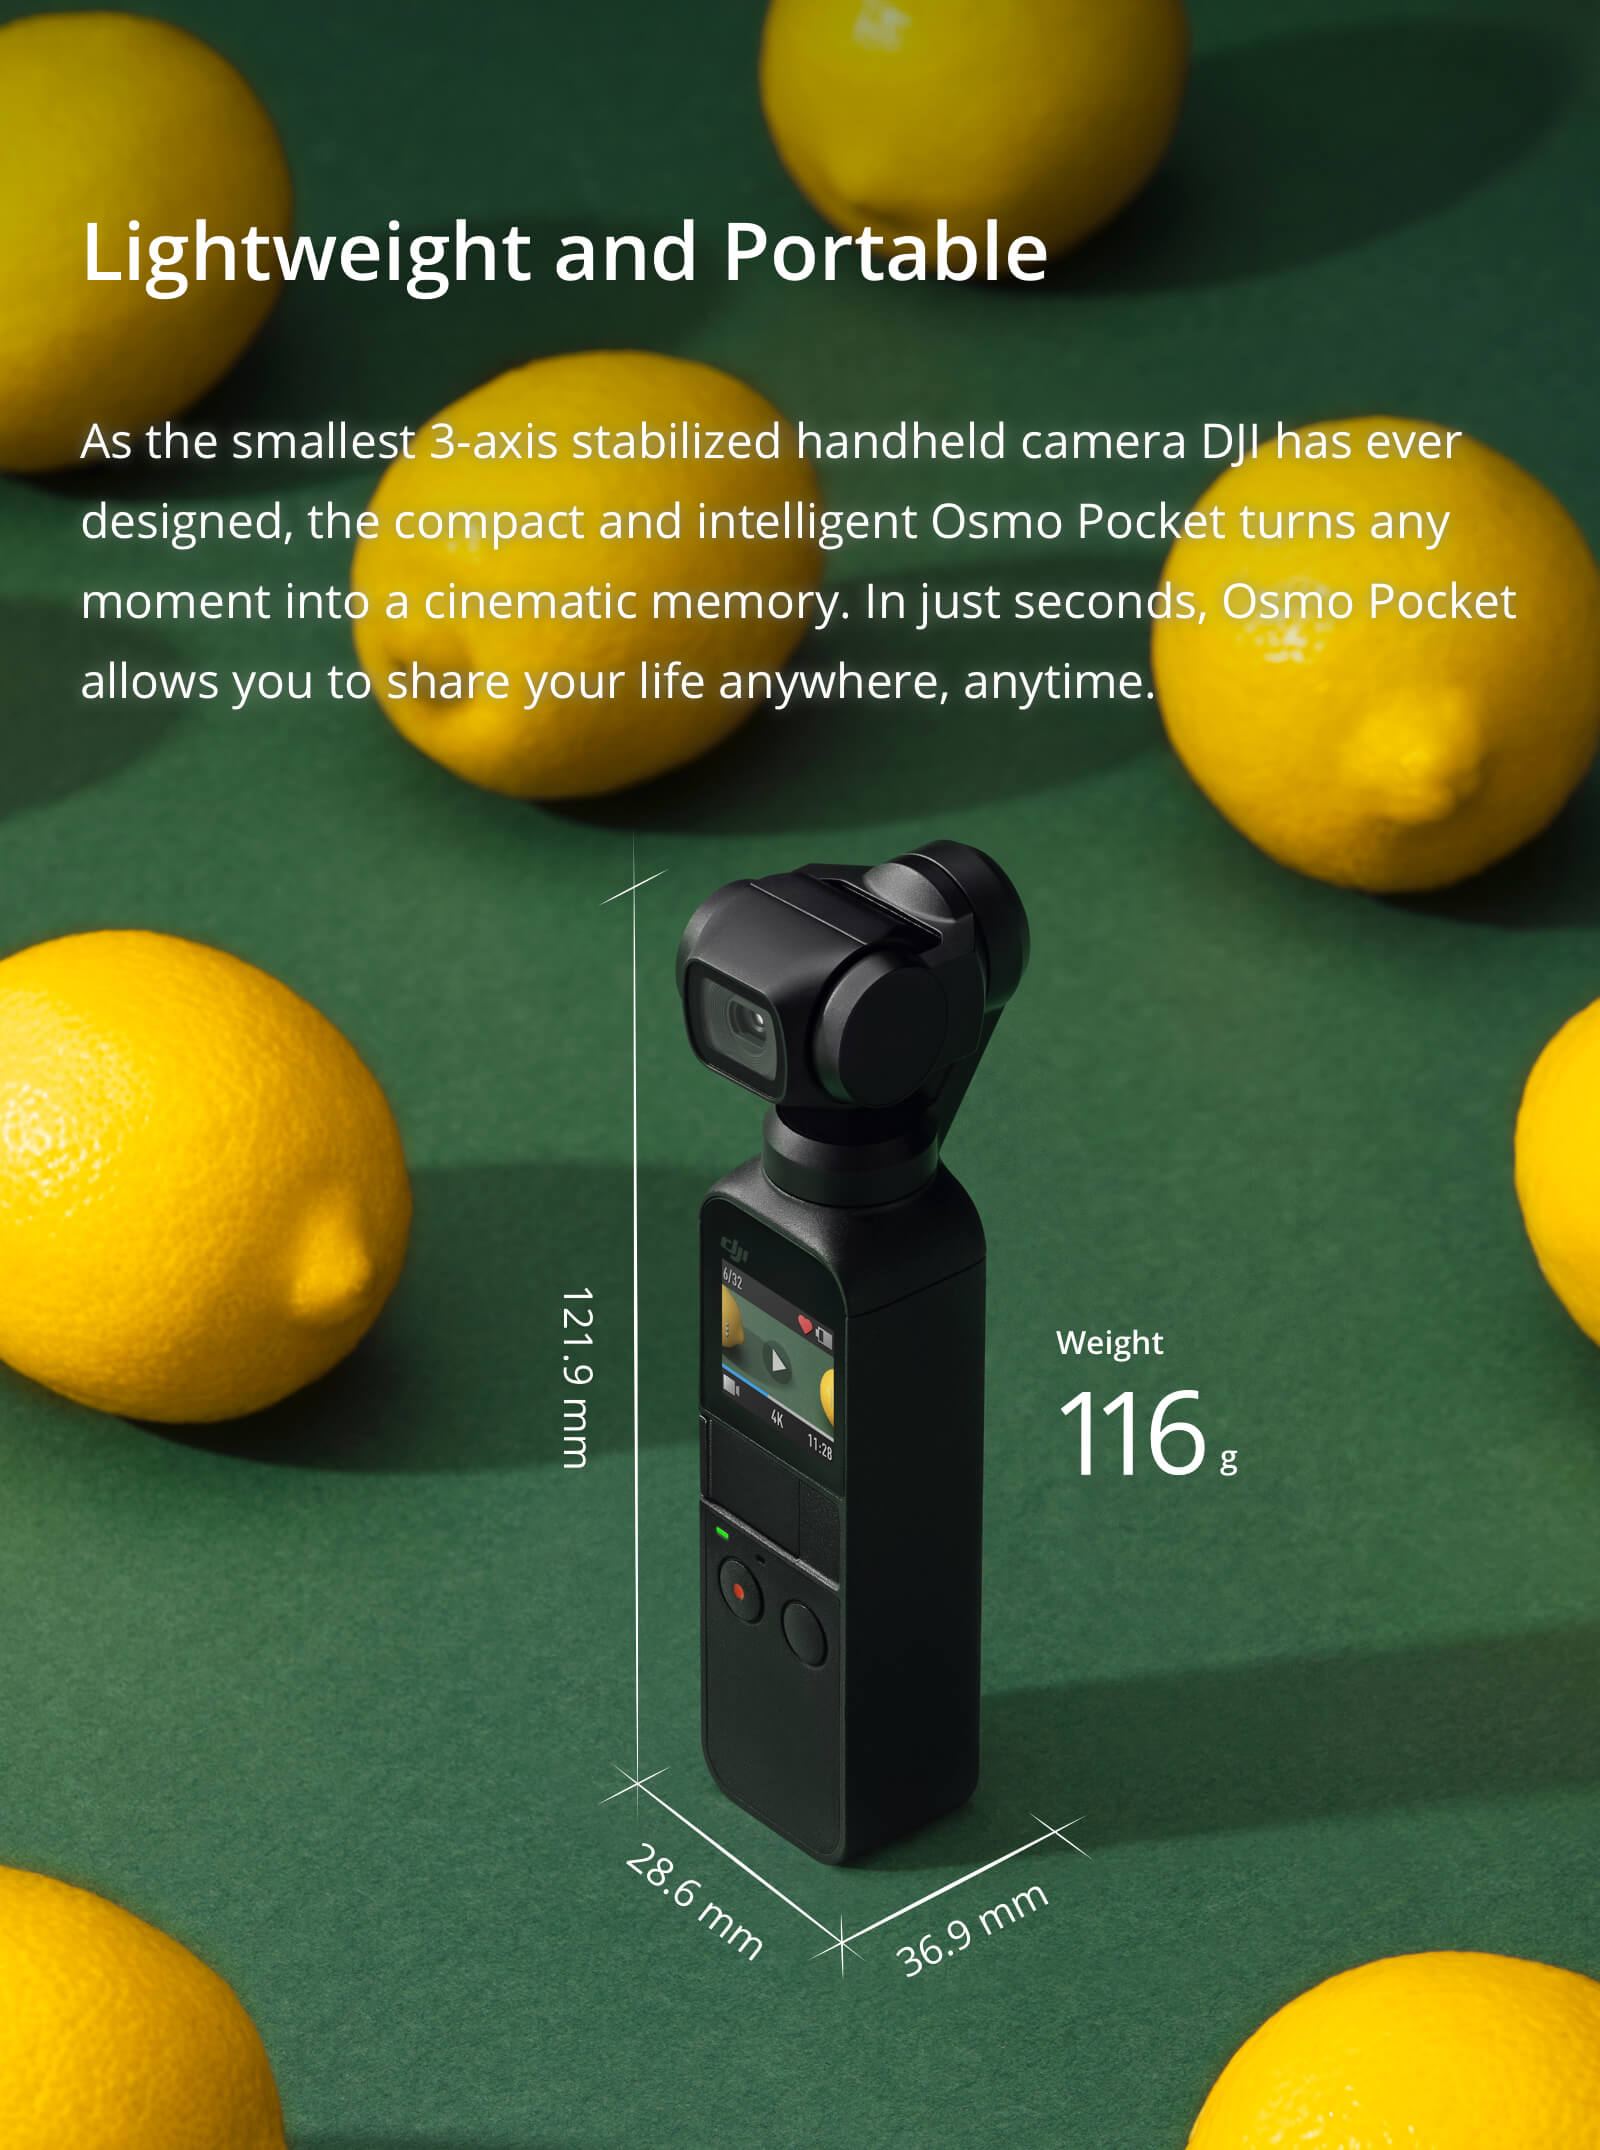 The Best Product Release of 2018: DJI Osmo Pocket